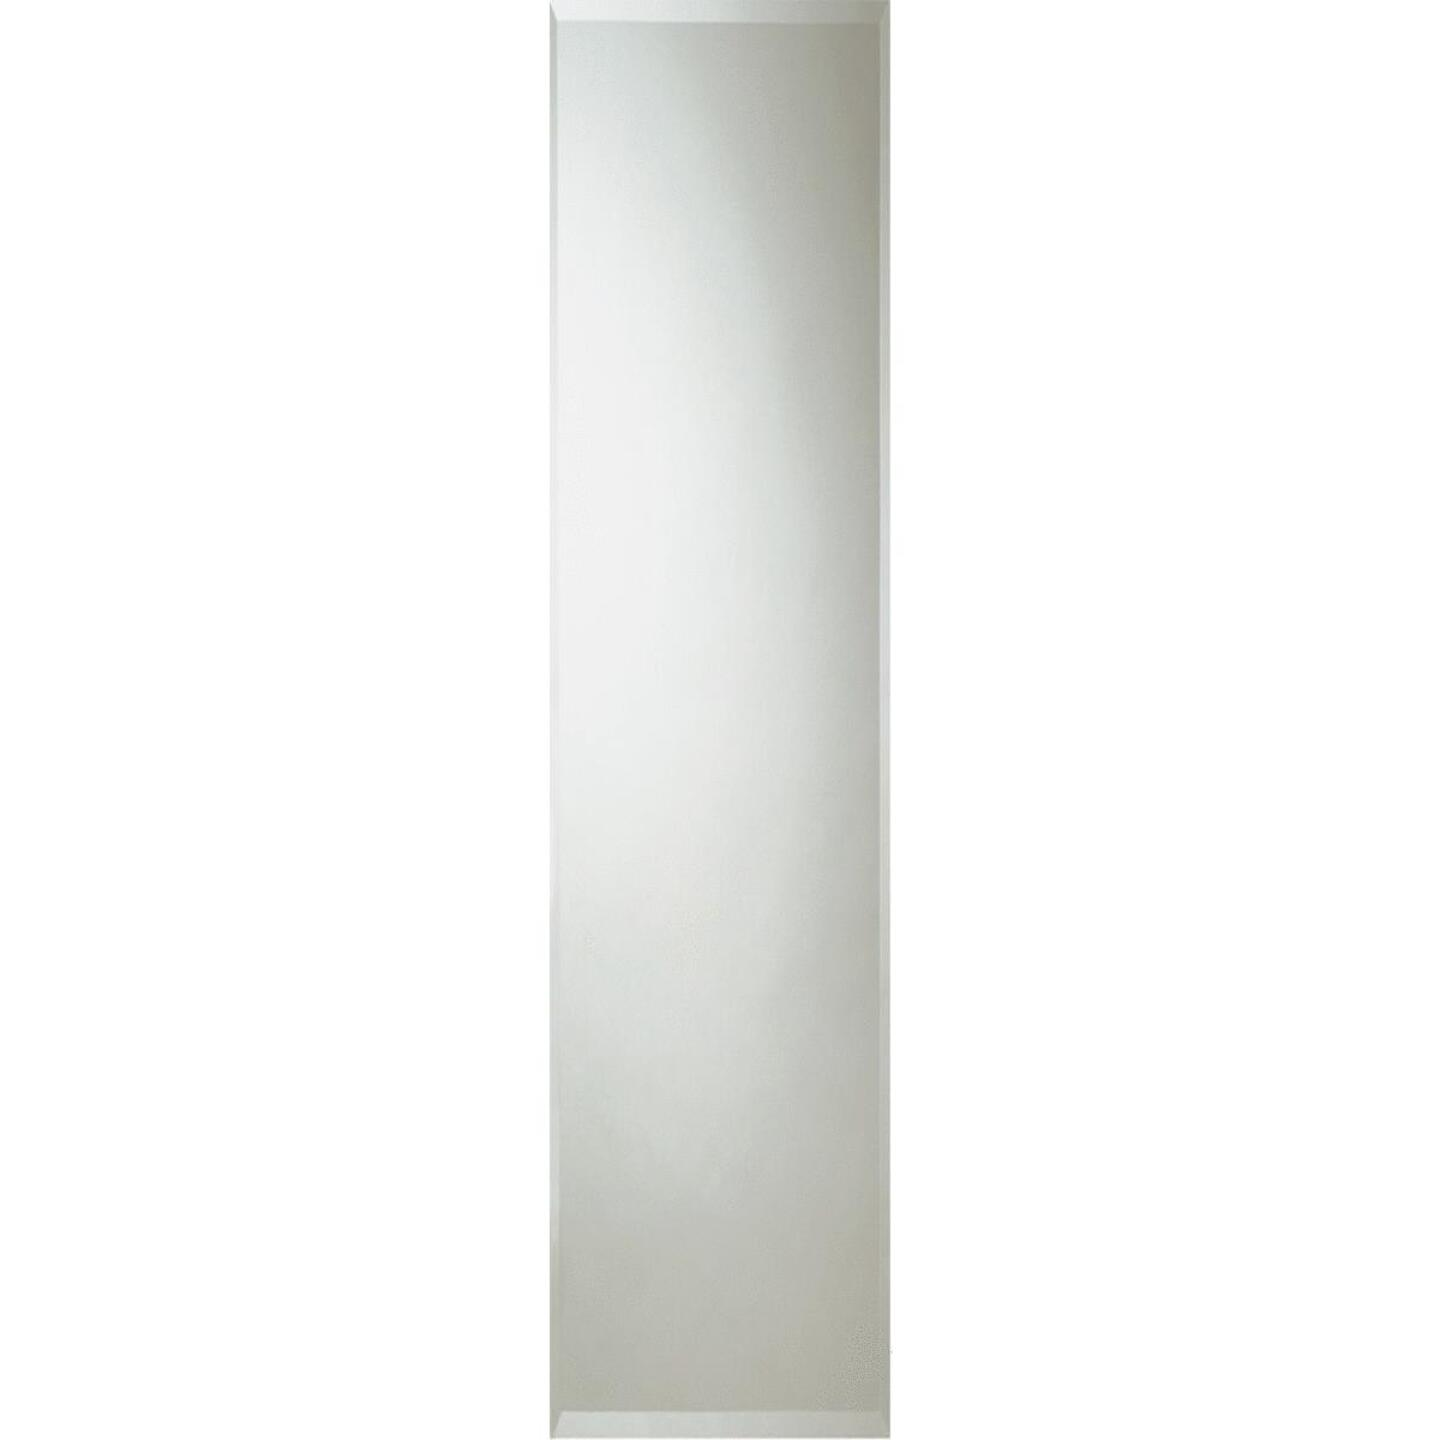 Erias Home Designs 16 In. W. X 60 In. H. Frameless Beveled Edge Door Mirror Image 1